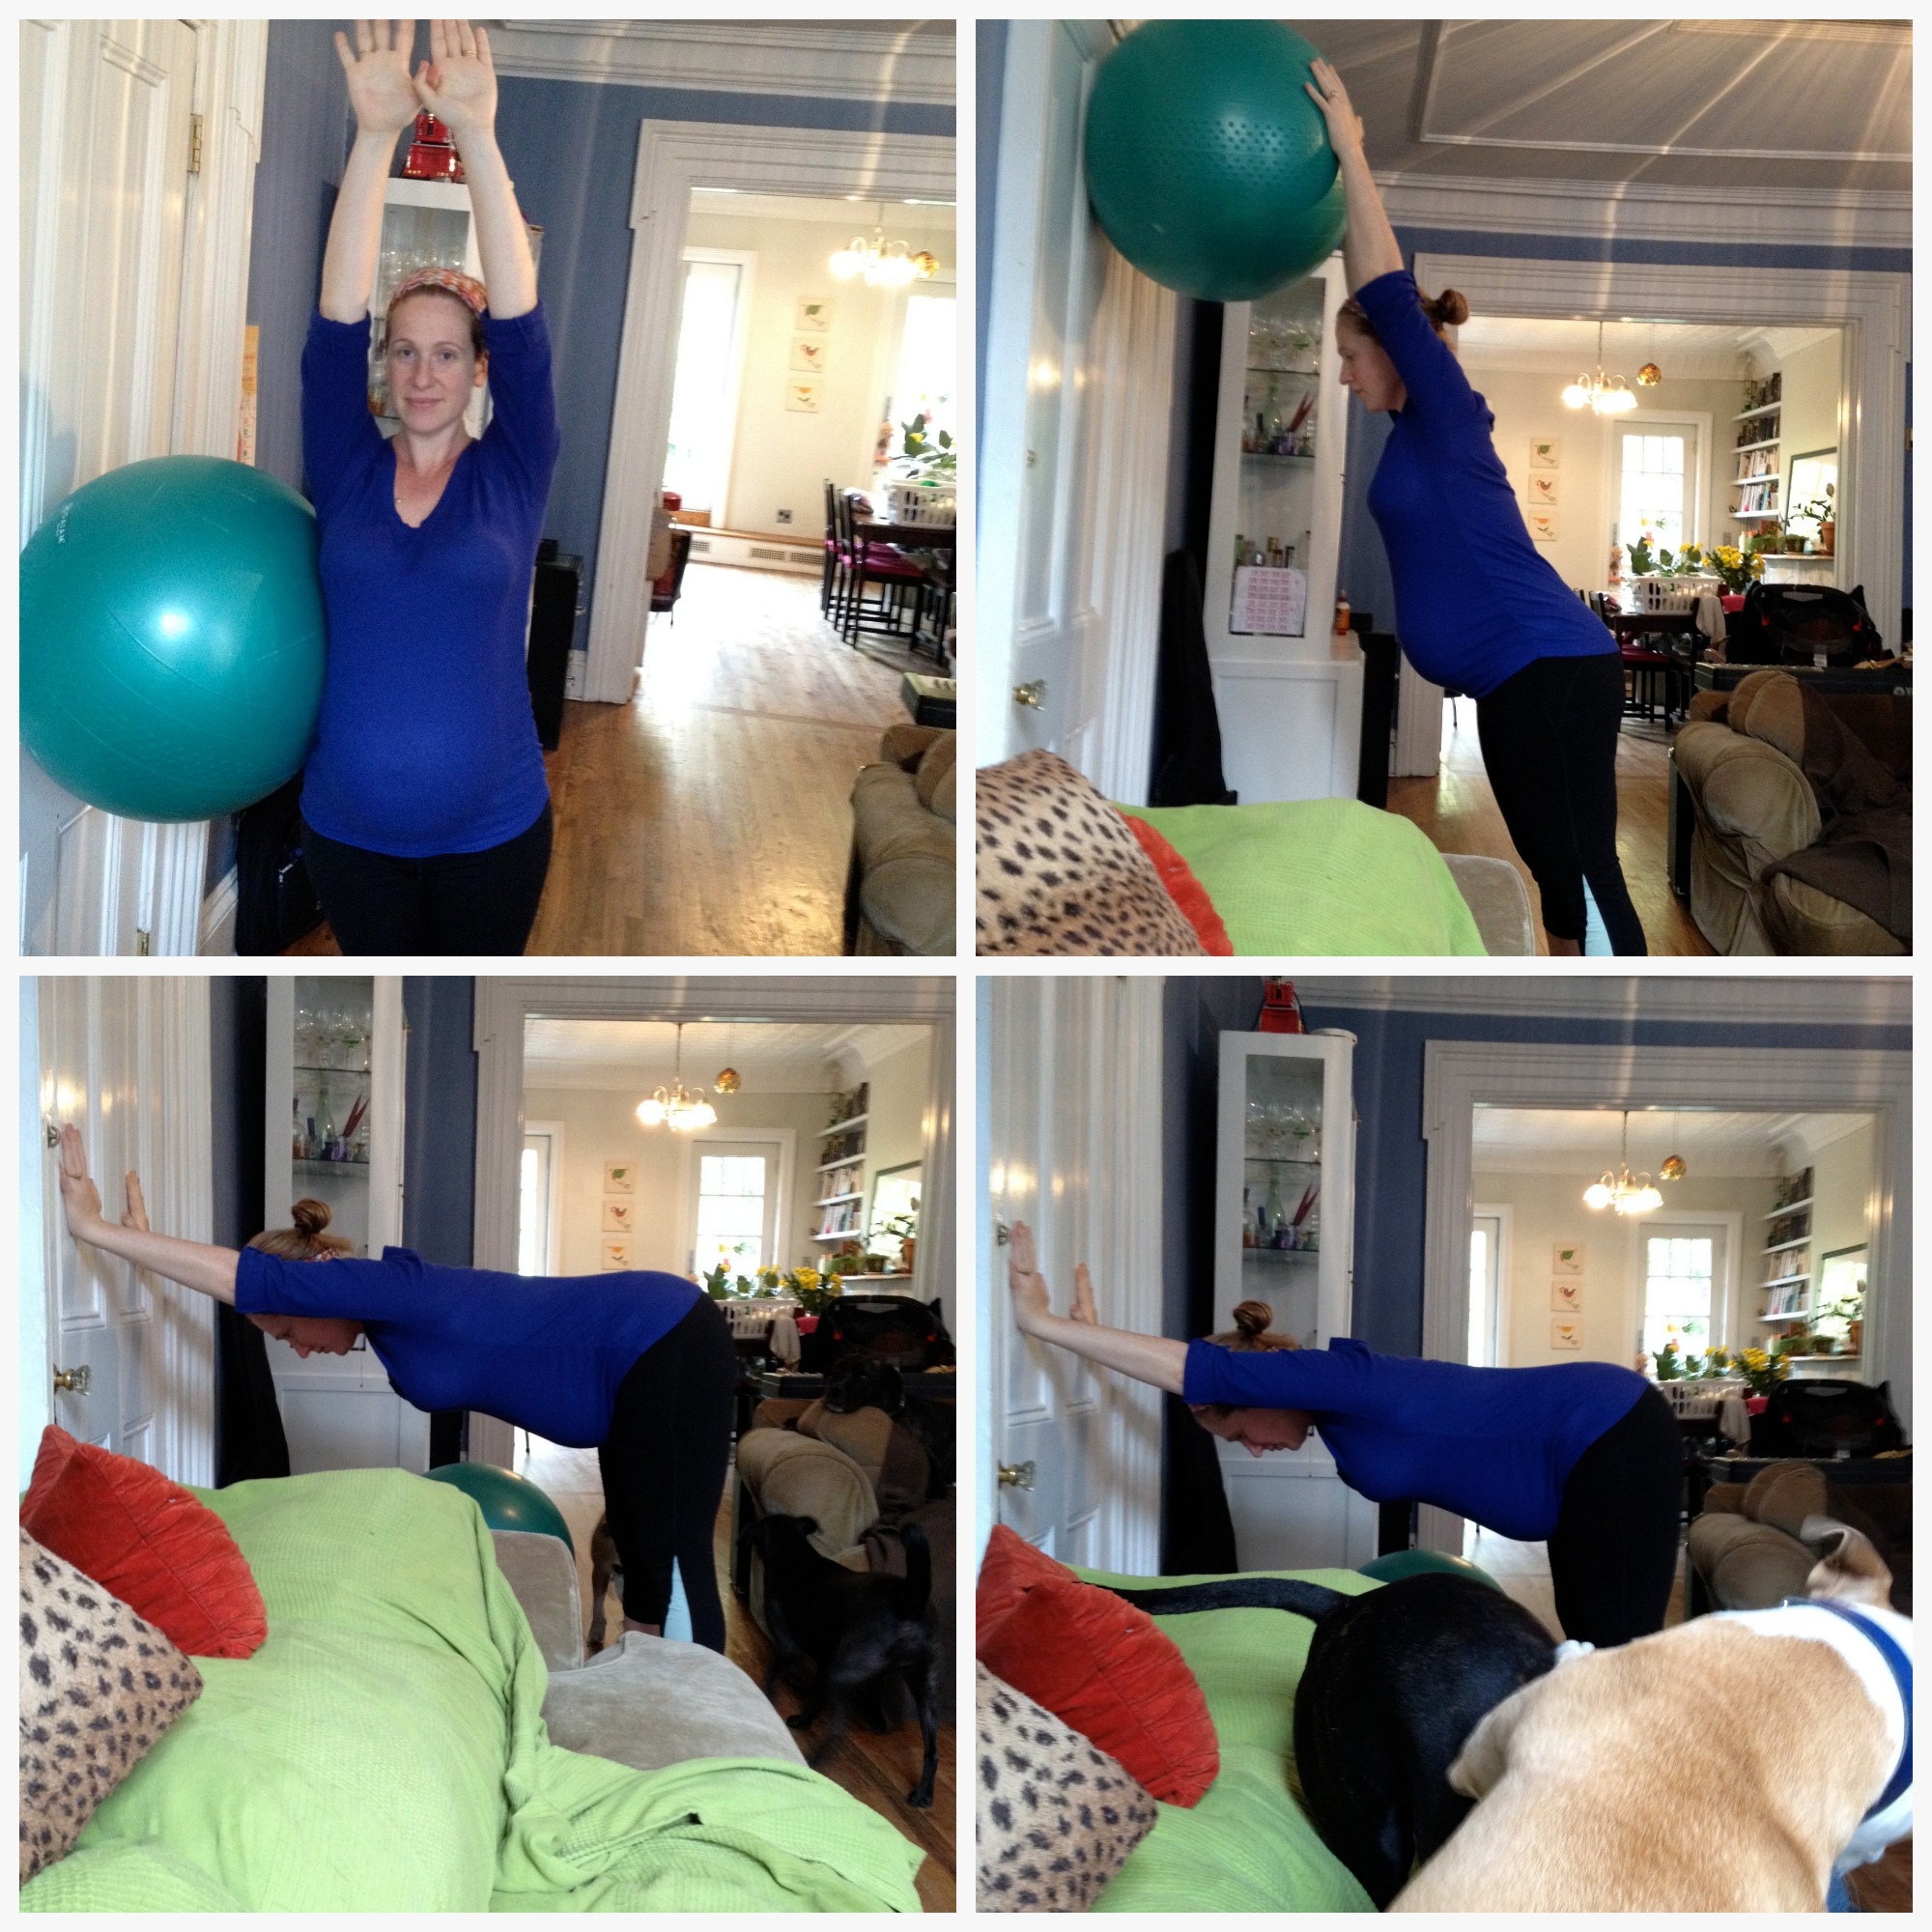 I like to use the ball to help stretch out my side body and my back. You can even do your stretches while your dogs play around you!     How to? Top left pic I stand tall and gently stretch over toward the wall. It's hard to get those side stretches in and this is a gentle way to do it. Top right pic I keep my hands on the ball and reach up through my fingers. I am NOT shrugging my shoulders, they are relaxed and down, but I am using my arms against the ball like this to lift upward focusing on the spine. Imagine in this position that gravity is lifting up through your spine instead of down. Breathe and enjoy this for a few deep breaths. The bottom two pics are really just a downward dog against the wall. Hands are flat against the wall, feet flat hip distance apart. I look to feel as if my tush is reaching out and my belly is lifted up. My shoulders are relaxed and my jaw is released. Breathe and enjoy this for a few deep breaths.